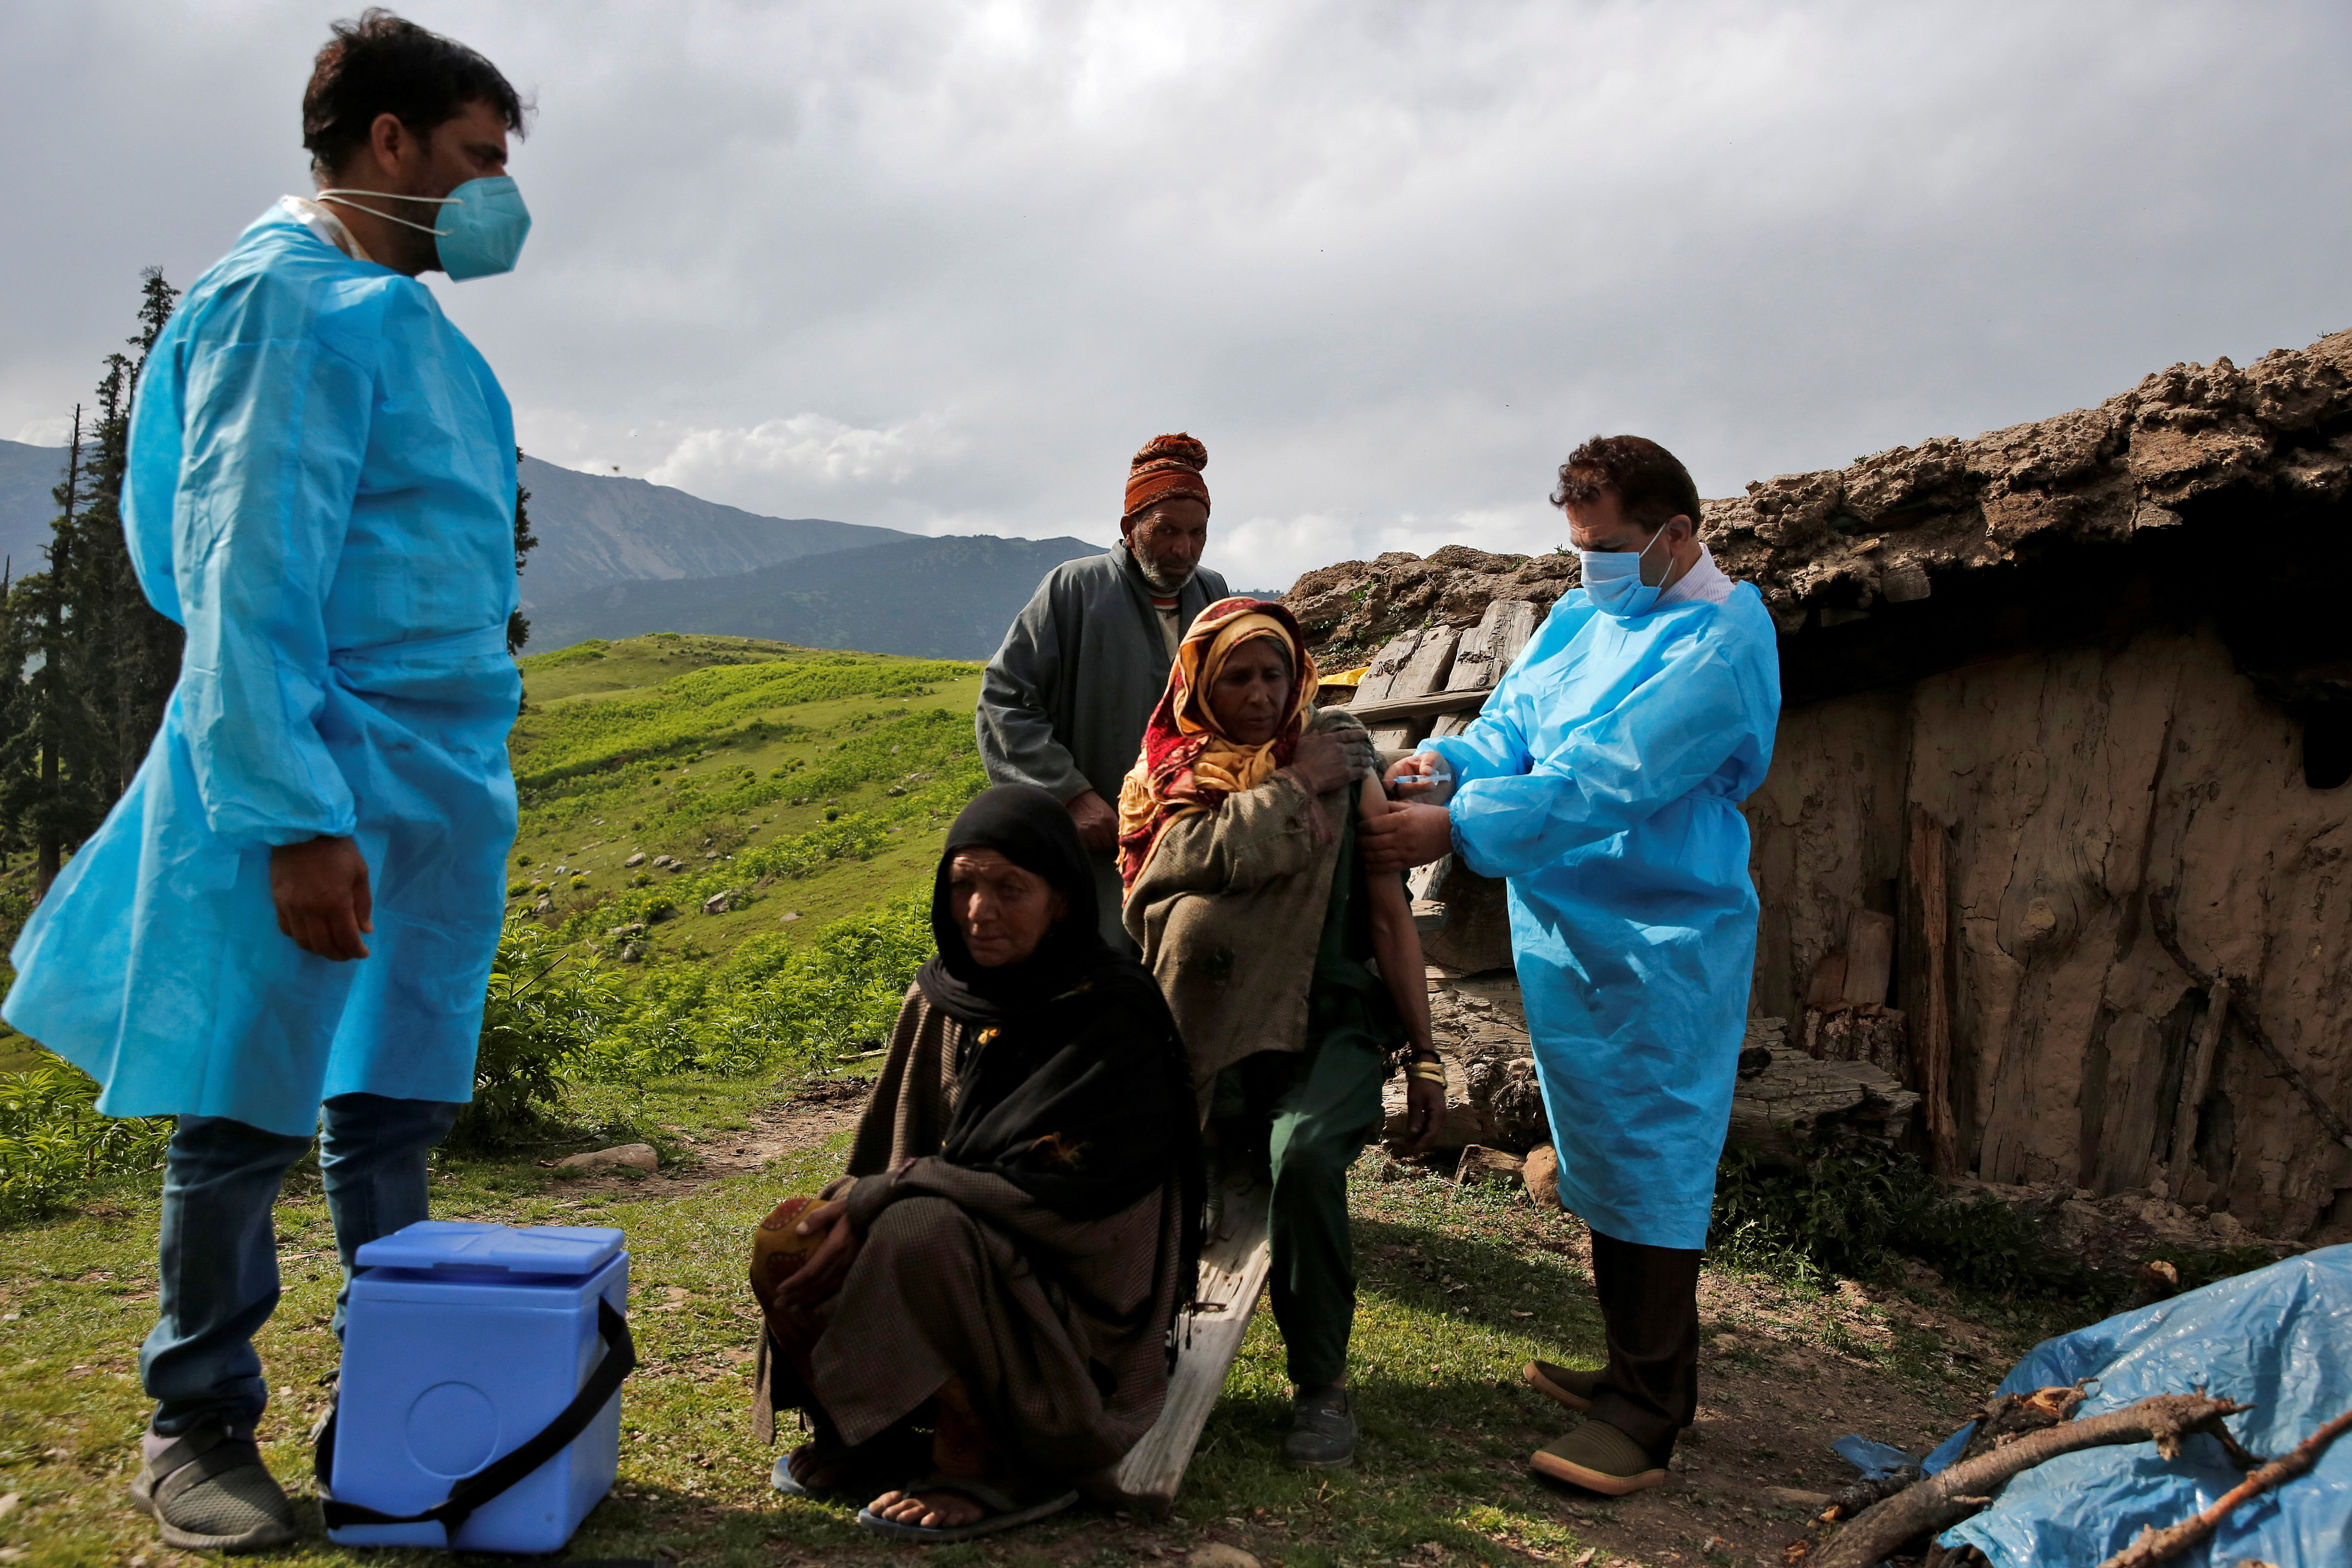 A shepherd woman receives a dose of COVISHIELD, a coronavirus disease (COVID-19) vaccine manufactured by Serum Institute of India, during a vaccination drive at Tosa Maidan in central Kashmir's Budgam district in India. June 21, 2021.